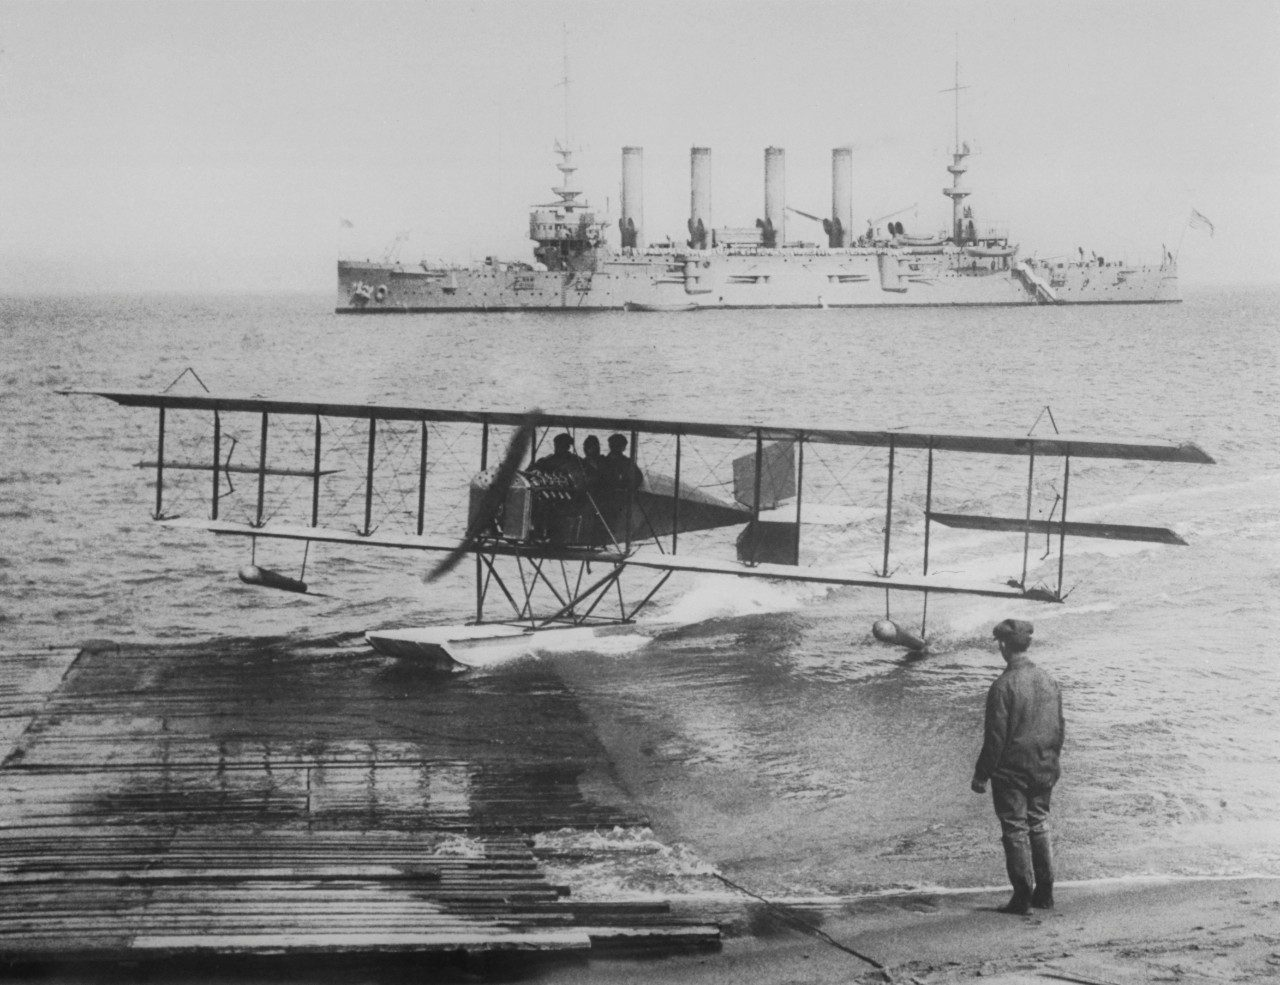 The Model G at San Francisco Bay during the Panama-Pacific Exposition in San Francisco